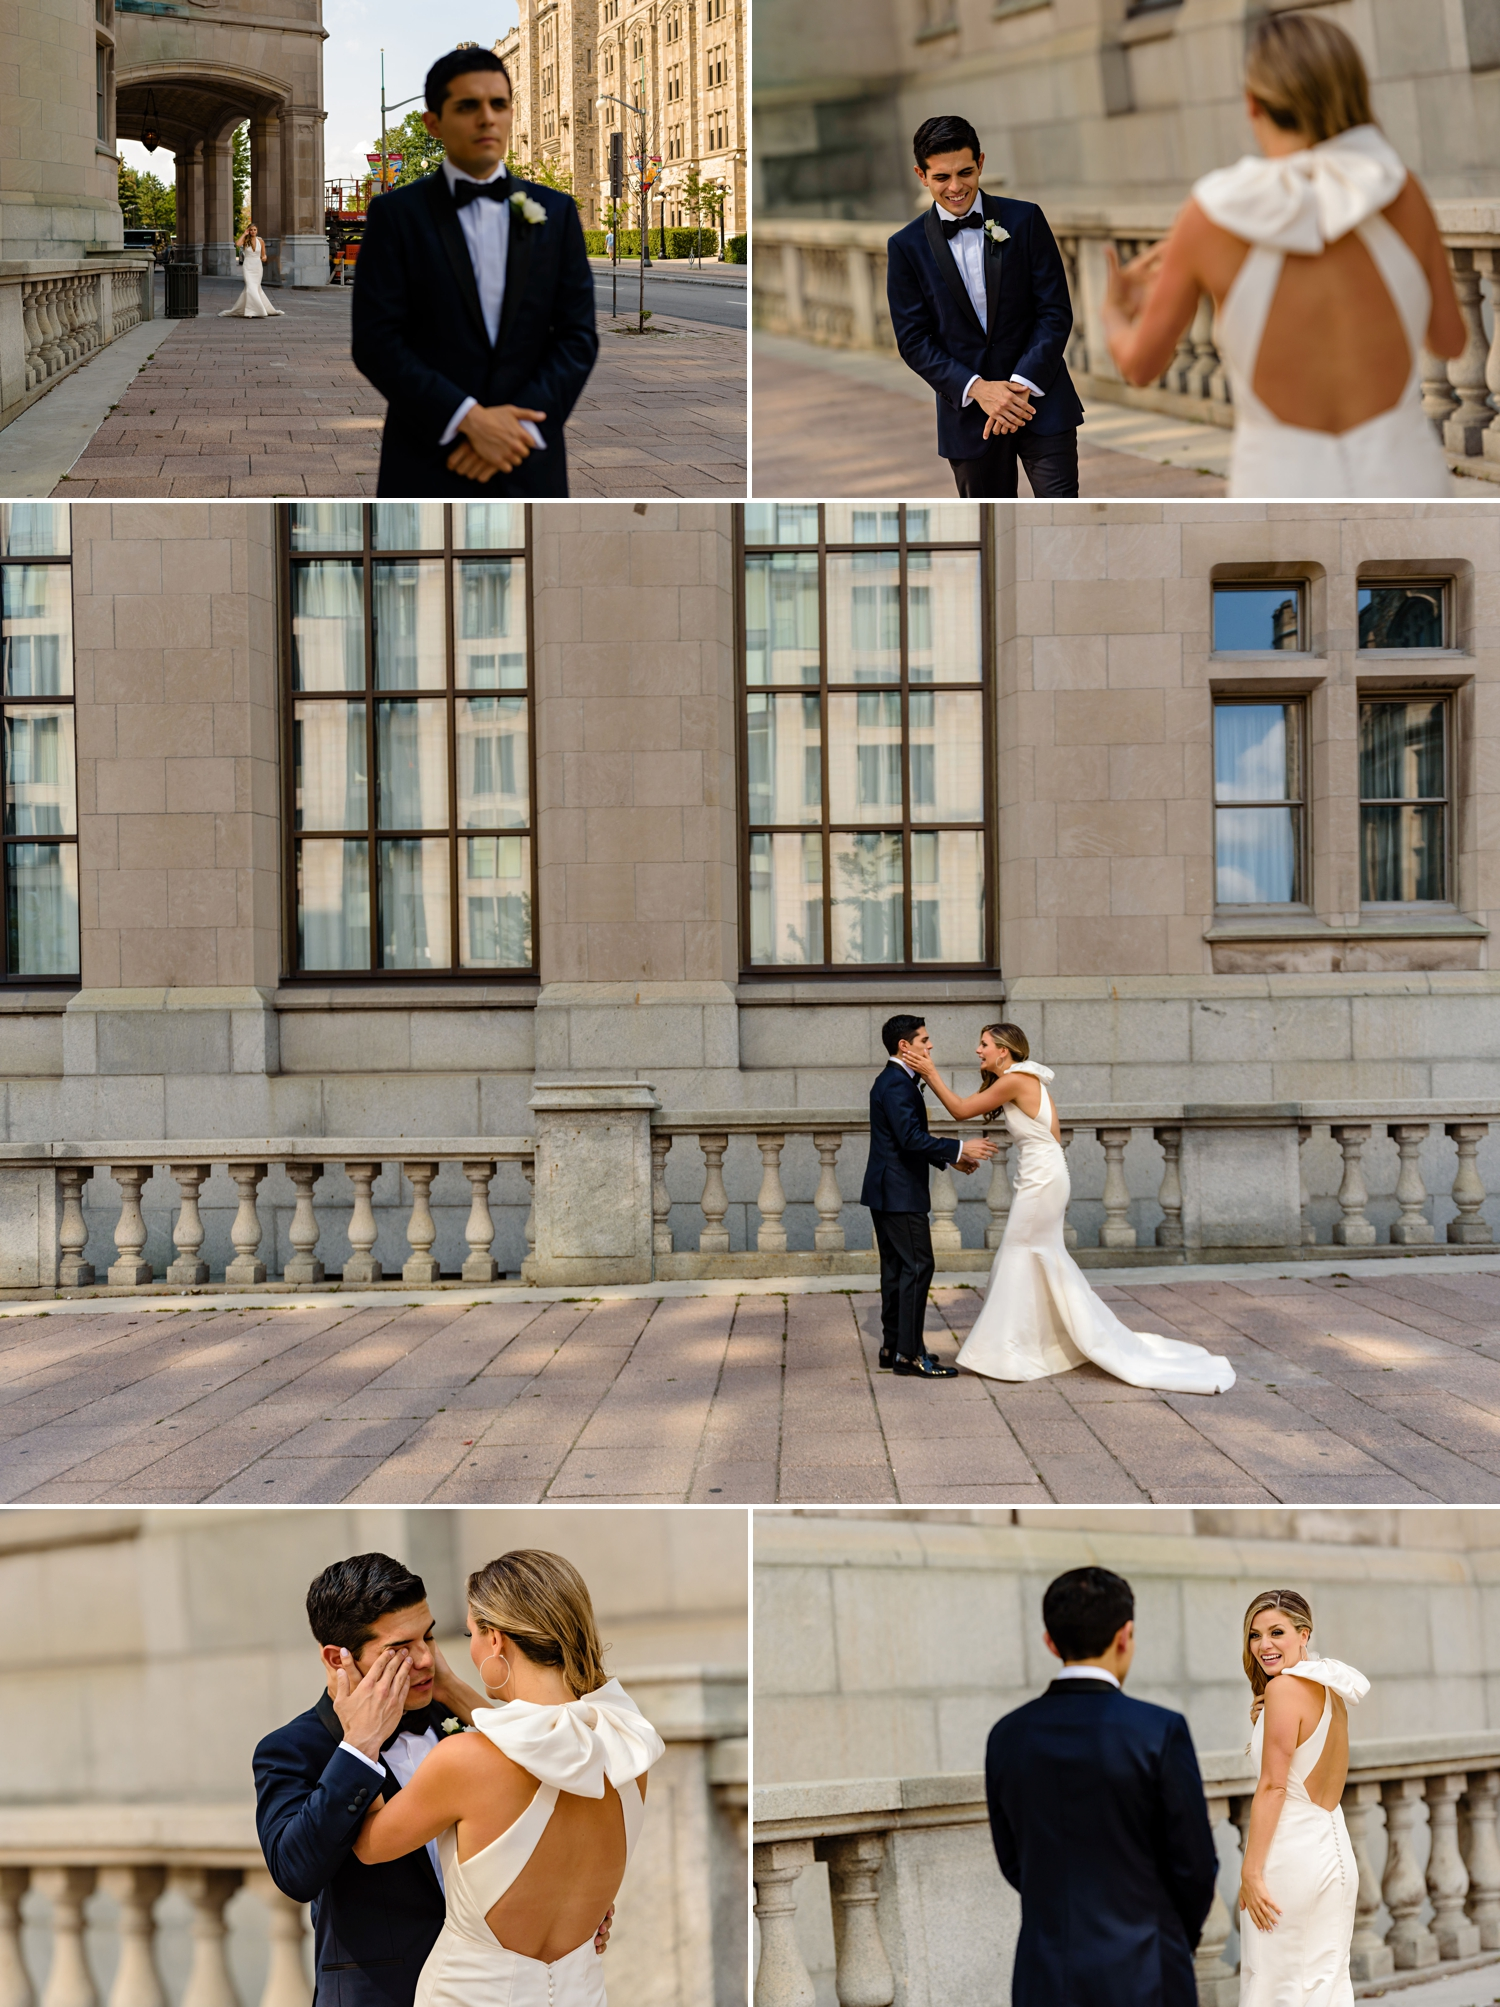 photos of the bride and grooms first look before a jewish wedding ceremony at the chateau laurier wedding in ottawa ontario